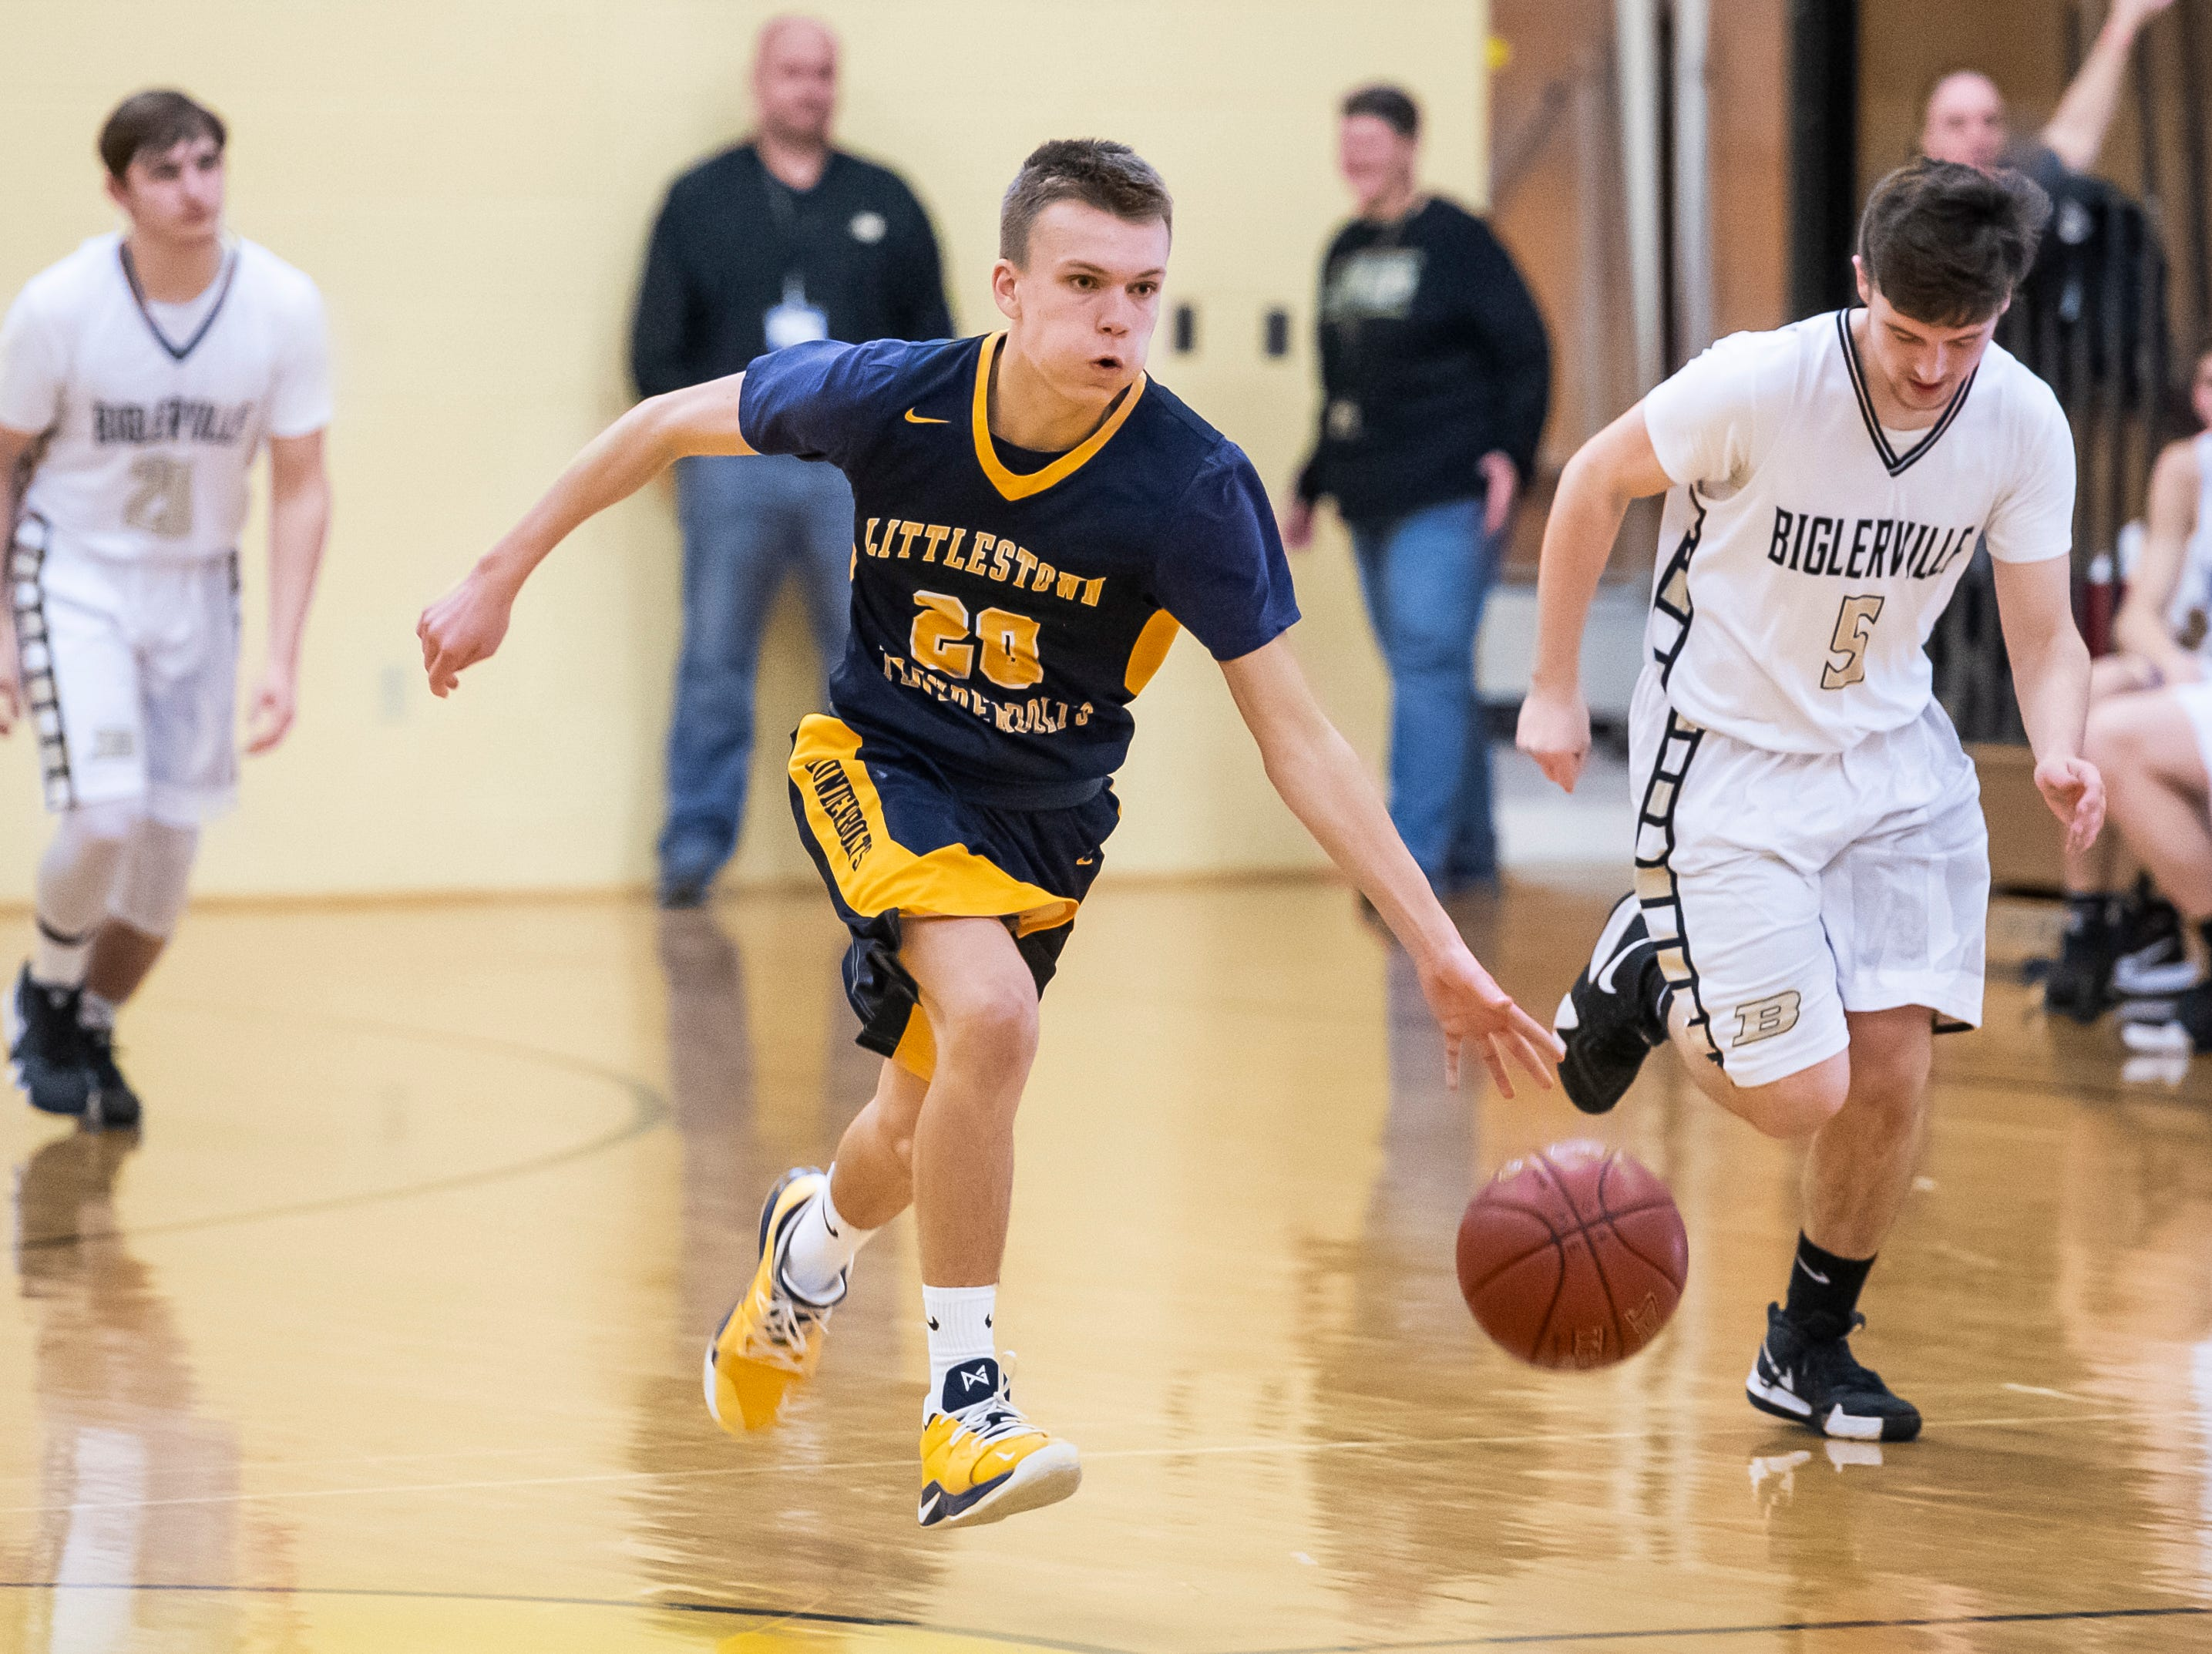 Littlestown's Braden Unger dribbles down the court during play against Biglerville on Friday, January 11, 2019. The Bolts won 65-38.